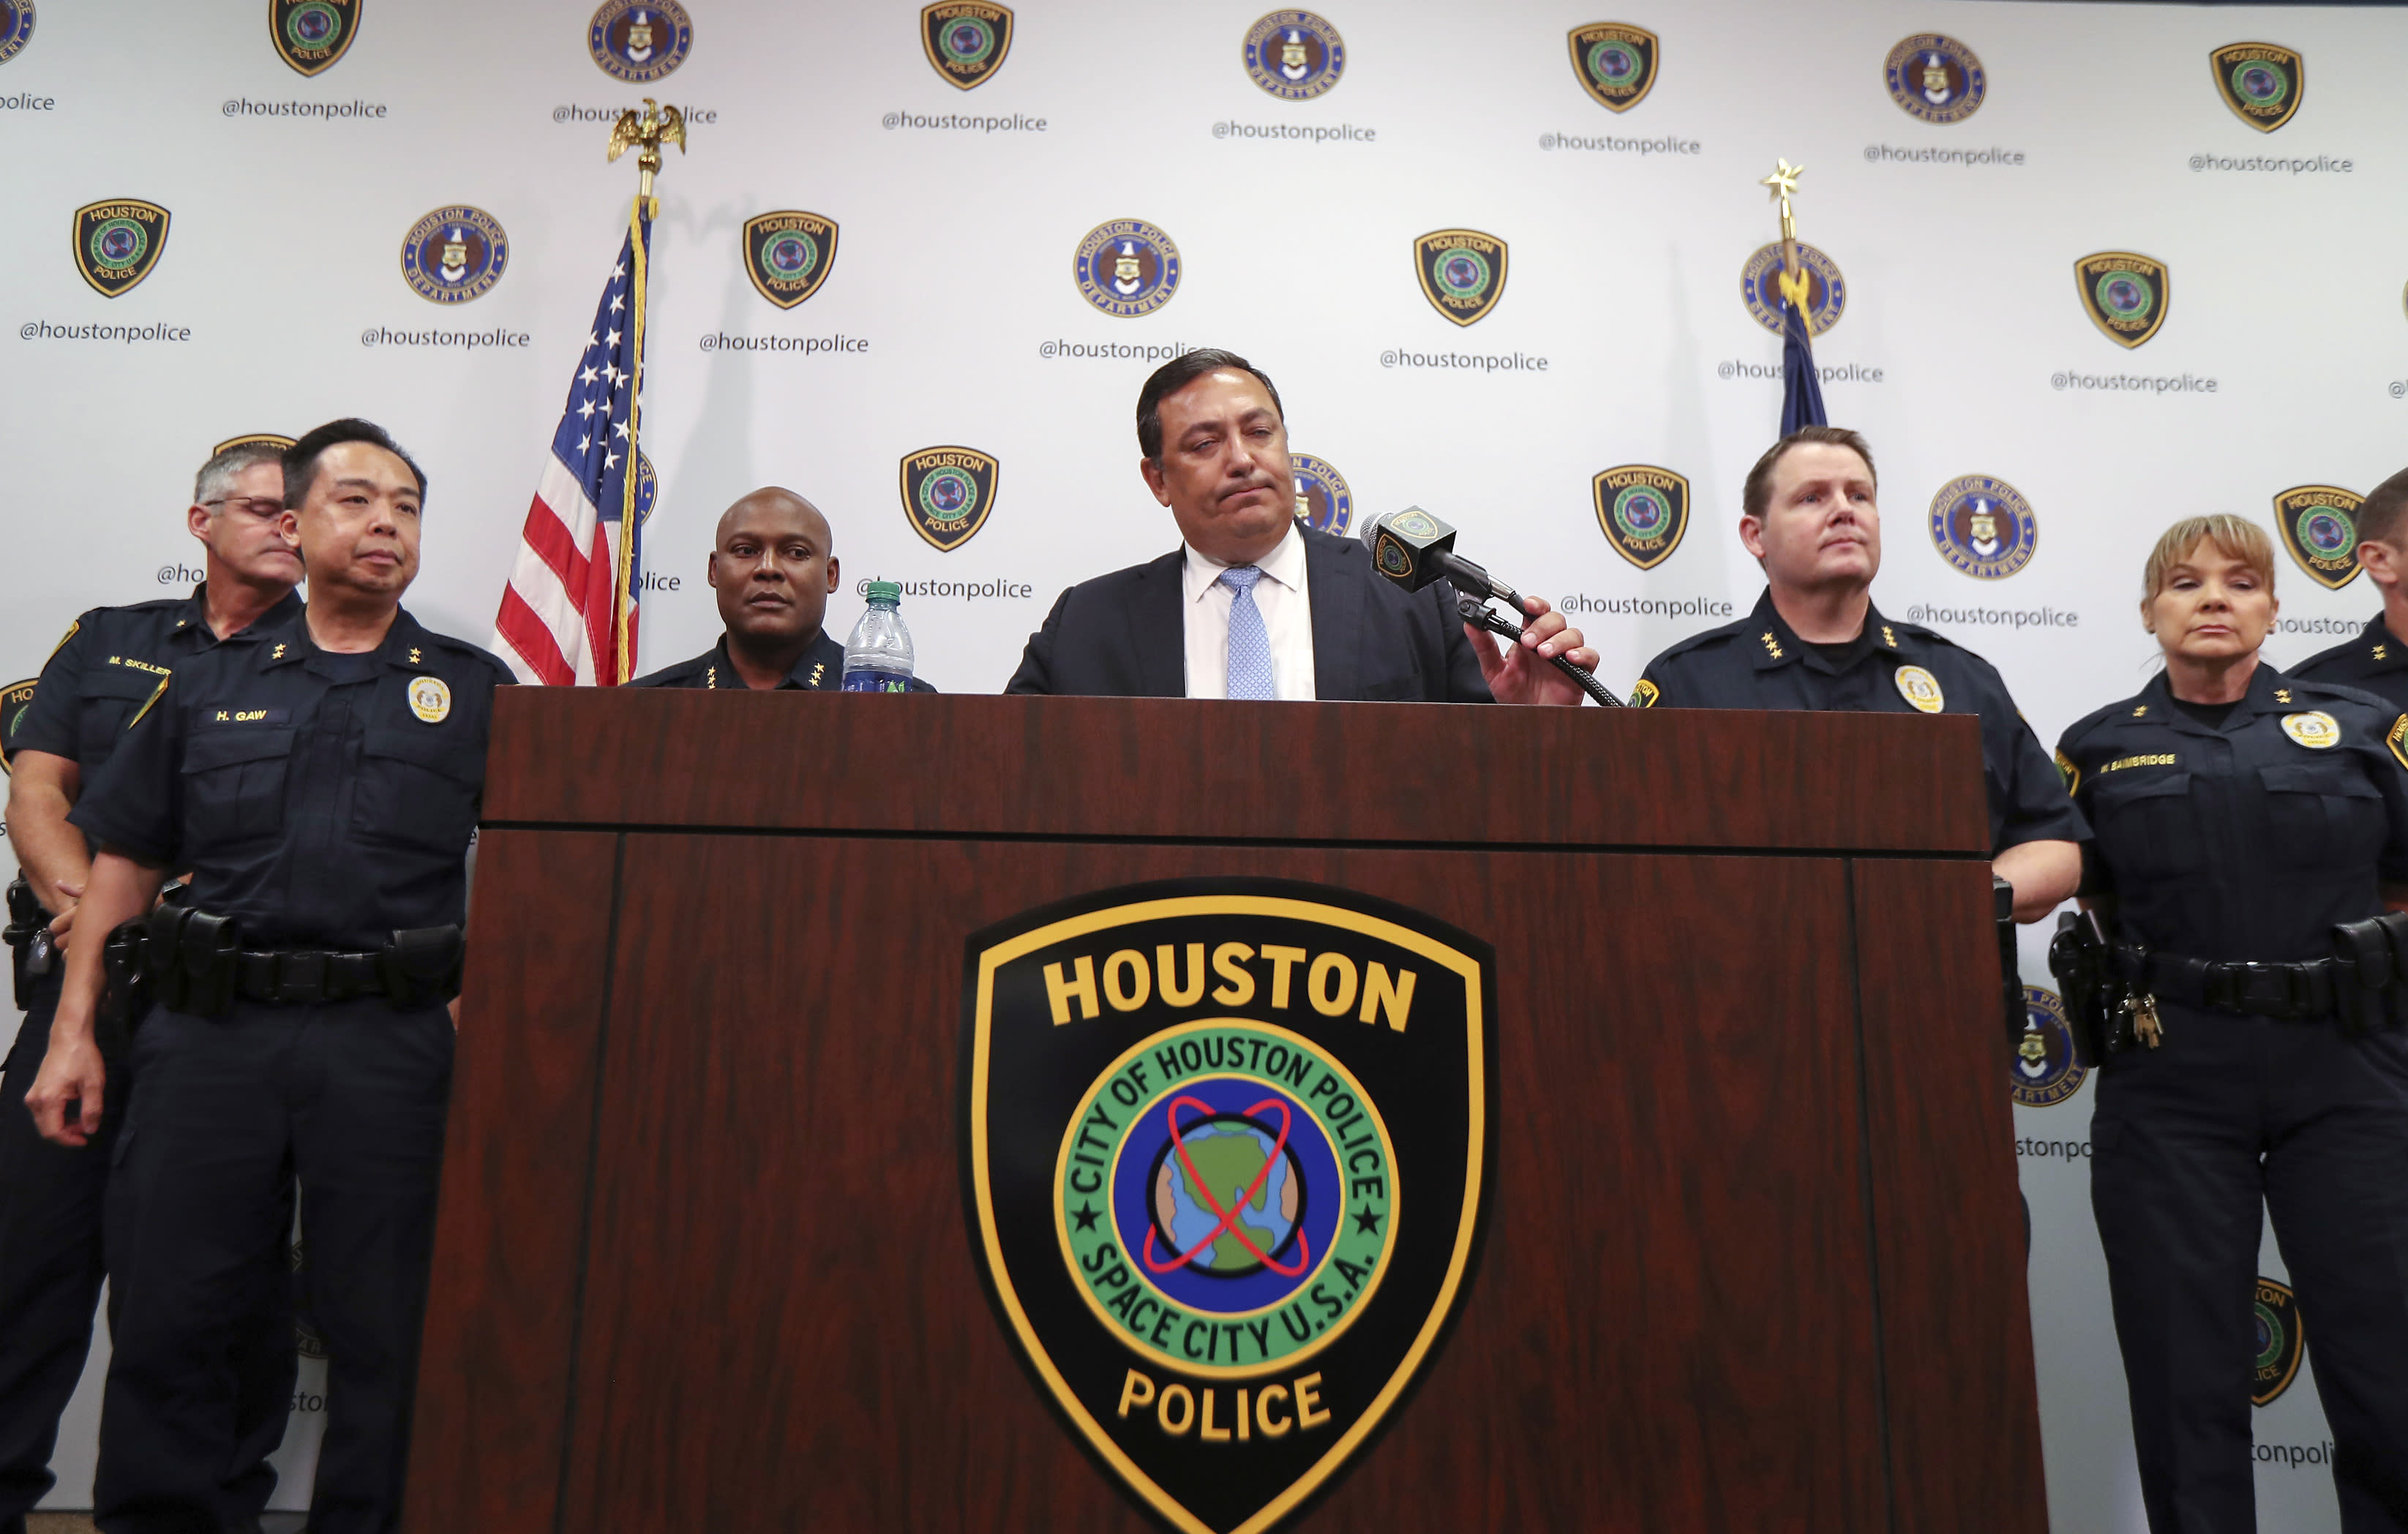 Houston Police Chief Art Acevedo address charges against two police officers in the fatal drug raid, Friday, Aug. 23, 2019, in Houston. A former Houston police officer has been charged with murder in connection with the deadly January drug raid of a home that killed a couple who lived there and injured five officers, prosecutors announced Friday. (Steve Gonzales/Houston Chronicle via AP)